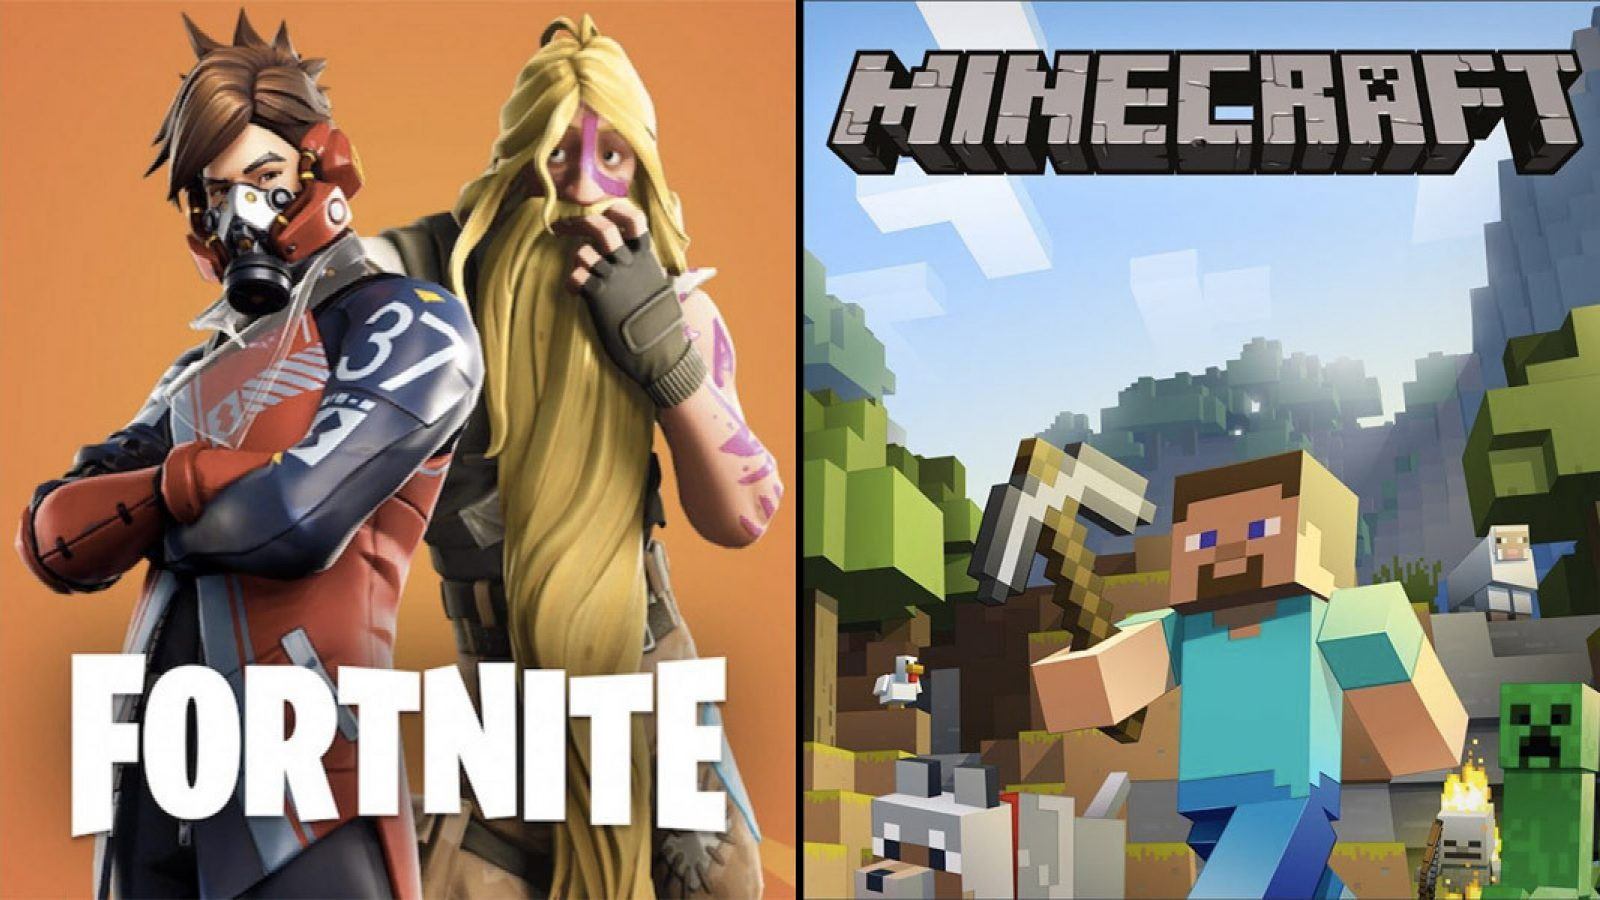 Minecraft has over 110 million active players per month now